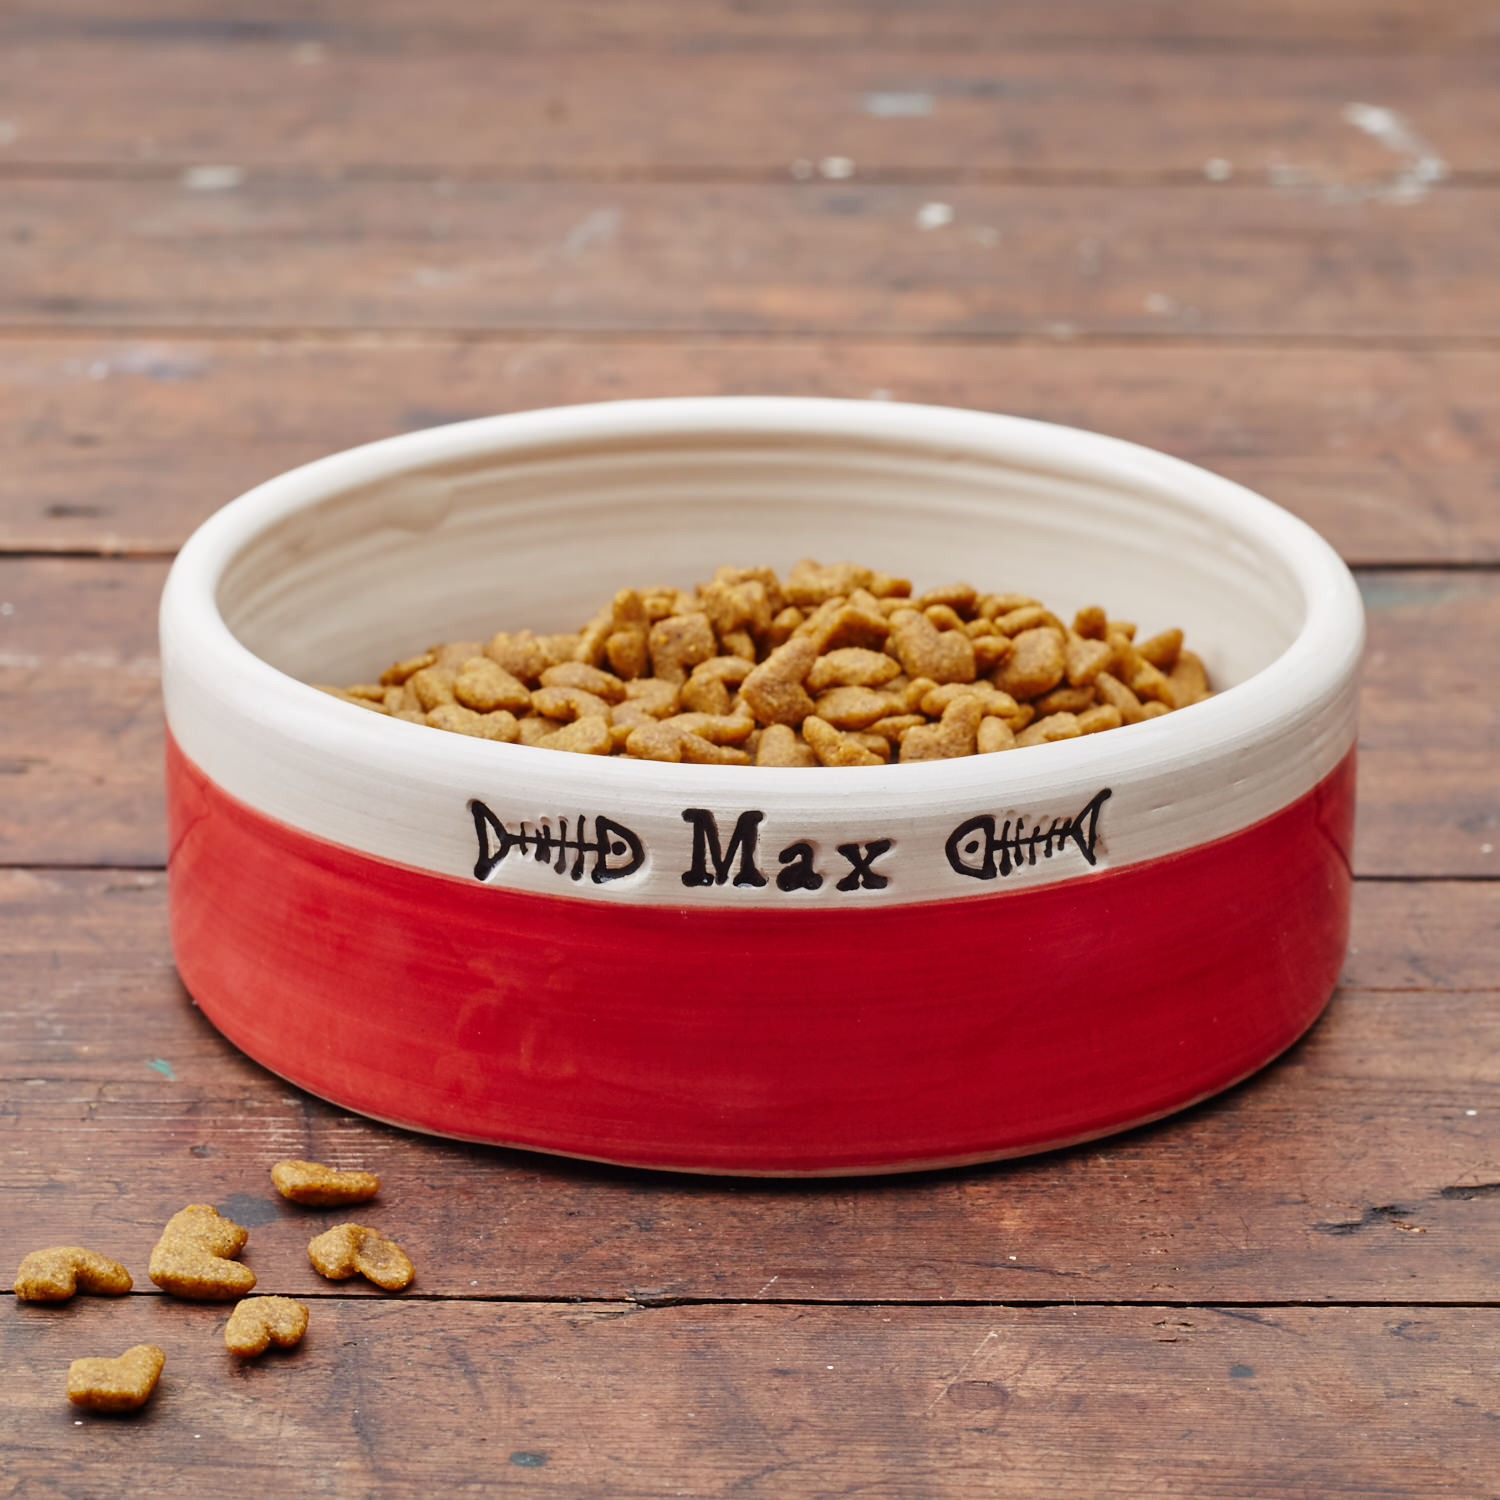 Personalised Cat Bowl, £23.99 by Chow Bella